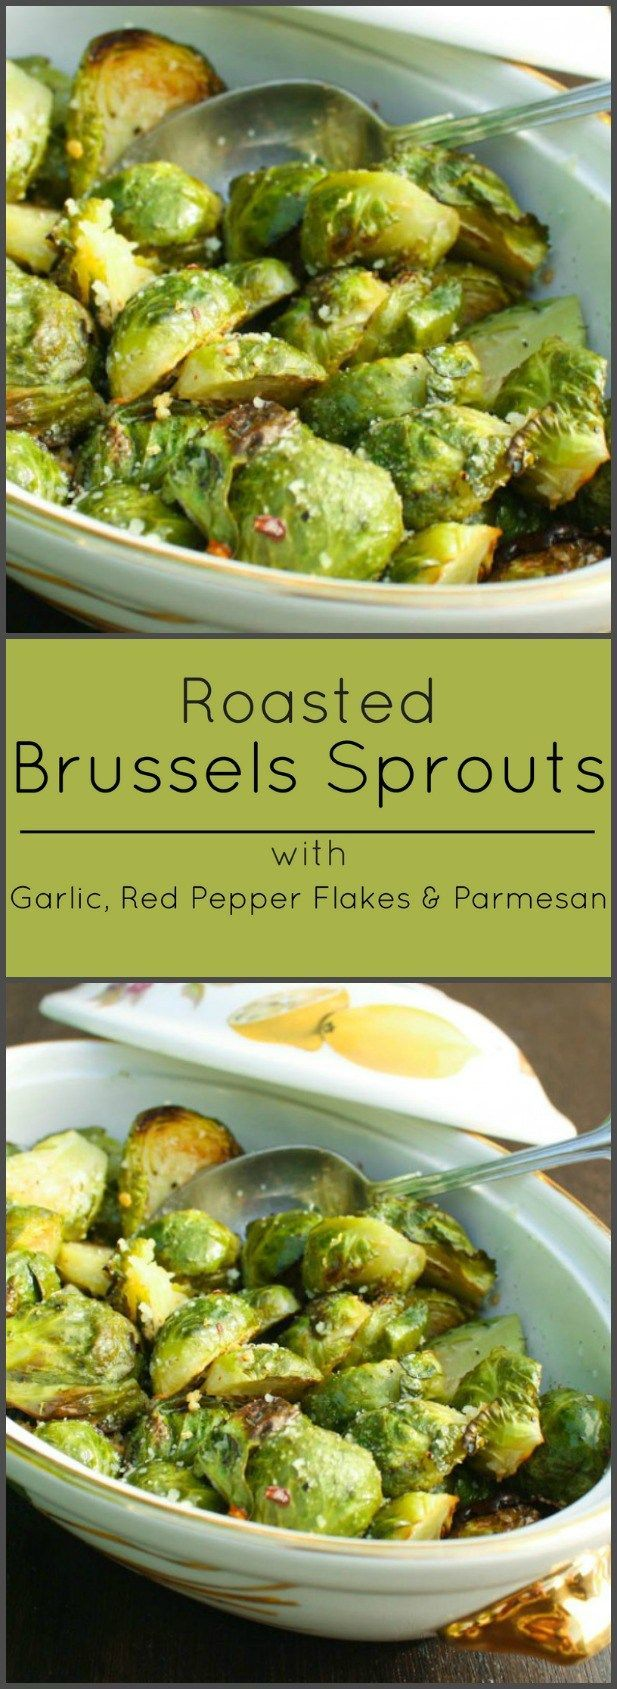 Brussels Sprouts with Roasted Red Pepper Flakes, Garlic and Parmesan Cheese.